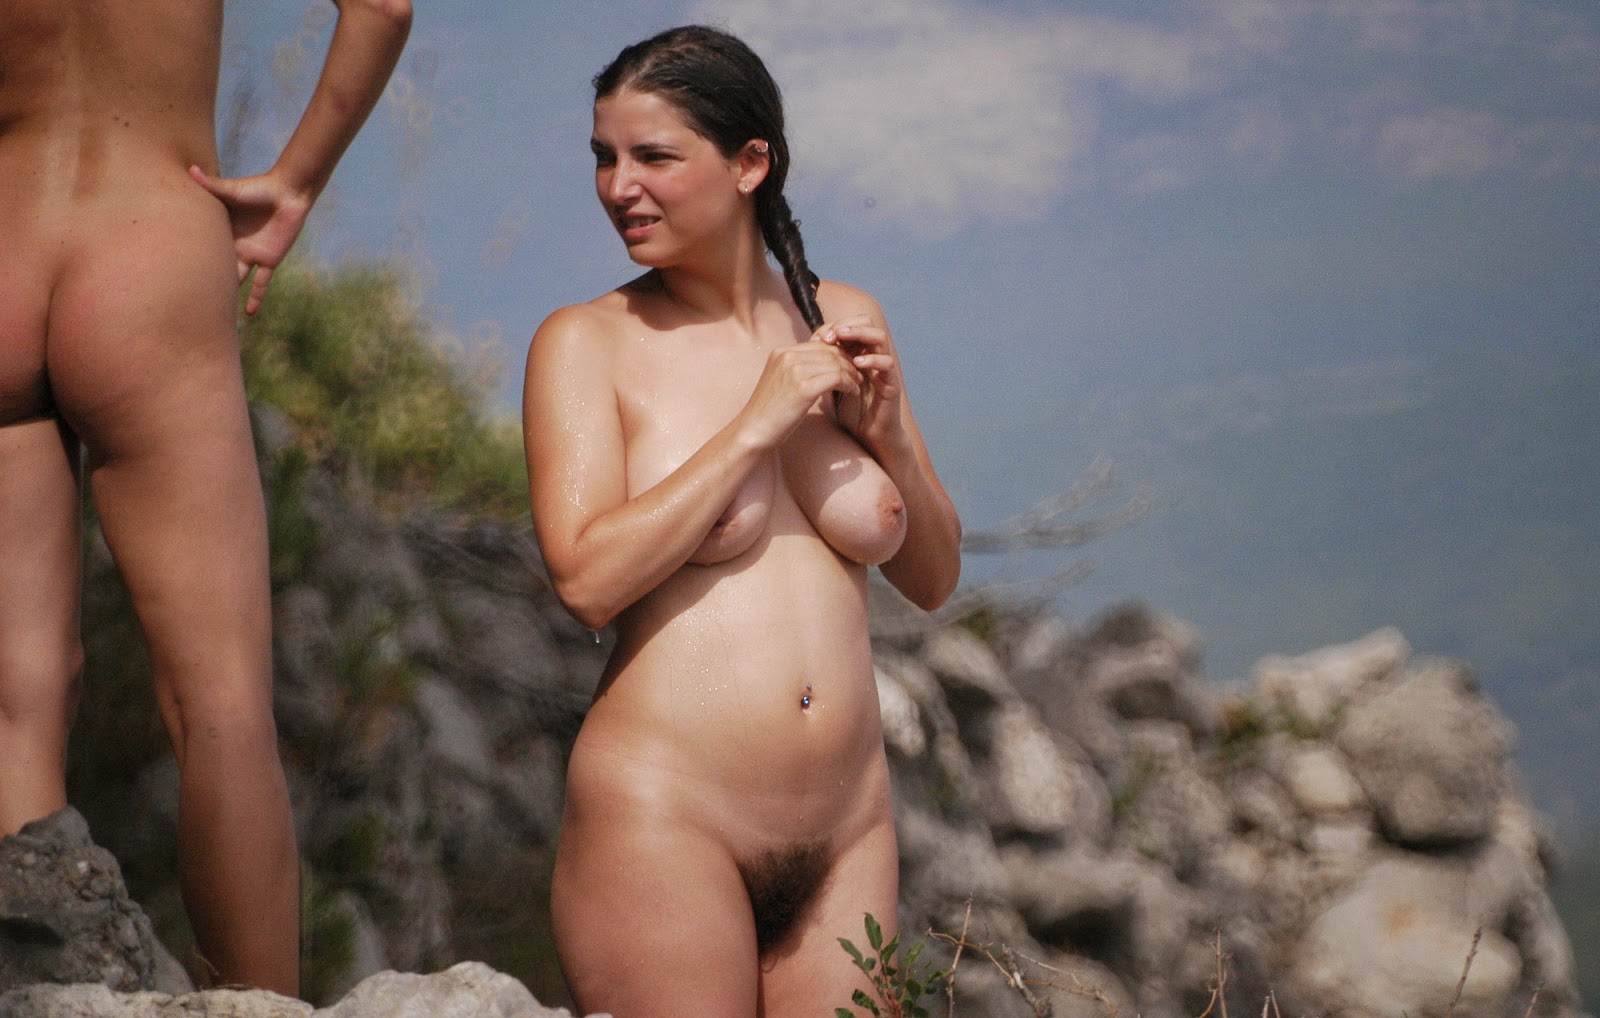 Remarkable, family nudist naturists consider, that